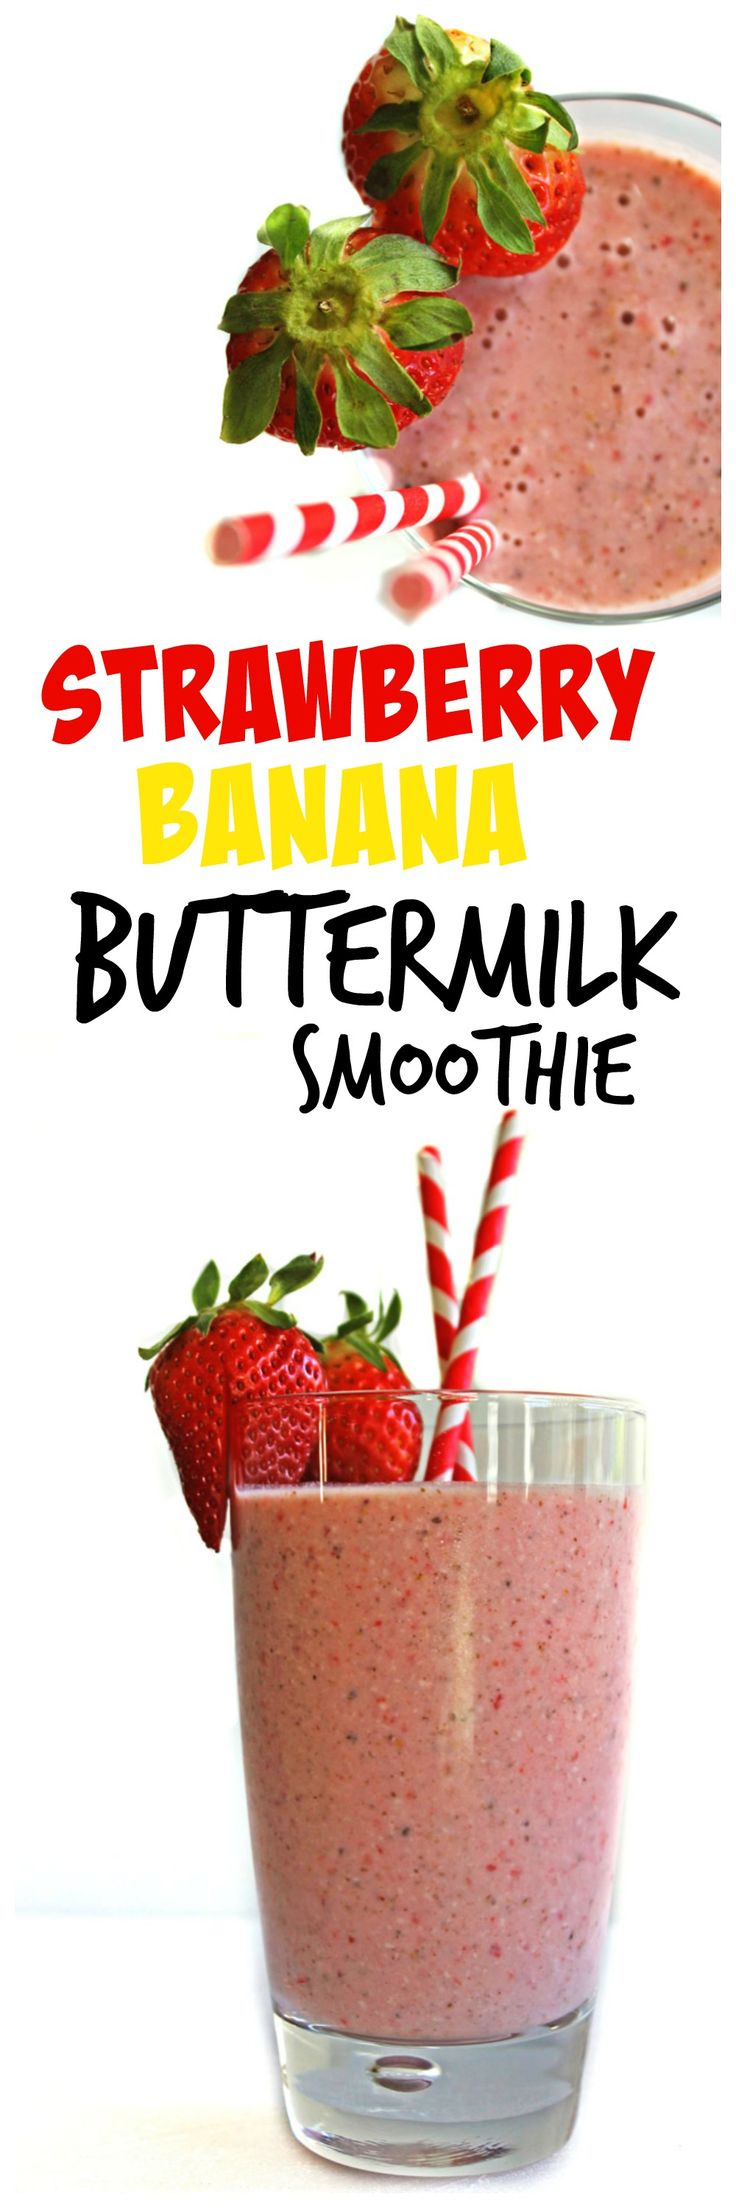 Awesome Spring recipe for a strawberry banana buttermilk smoothie!